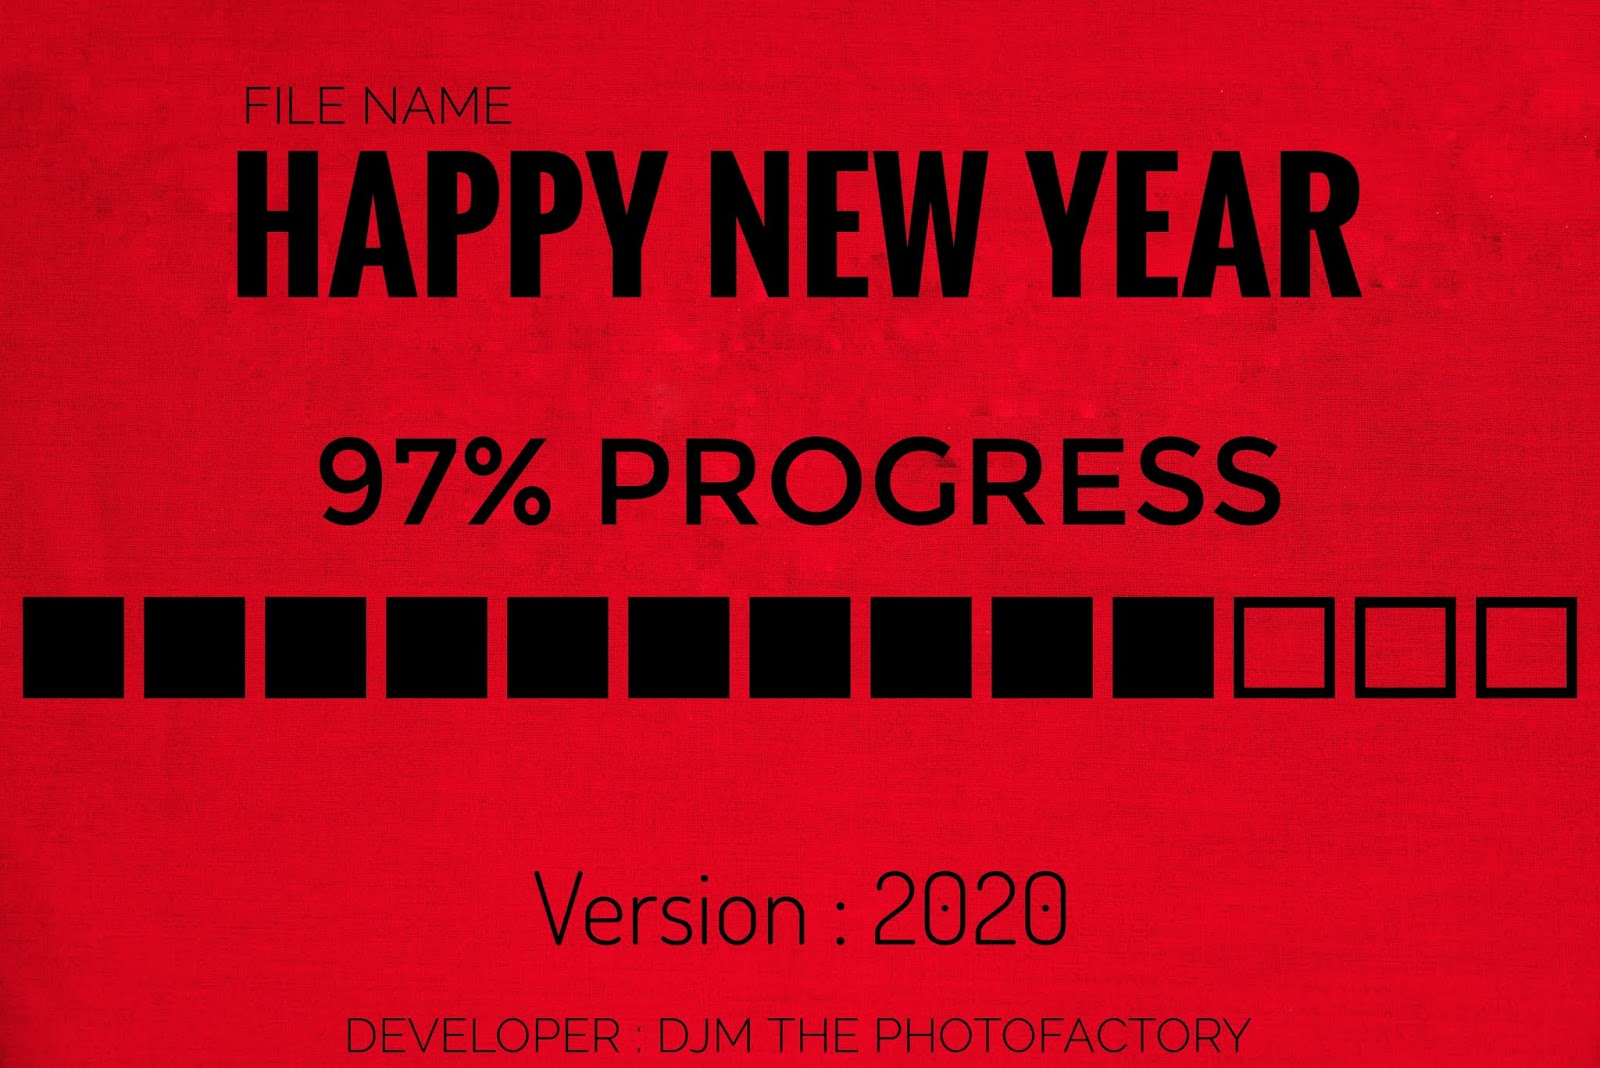 Happy New Year 2020: Wishes, Messages, Quotes, Images, Status, Greetings, SMS, Wallpaper, Photos and Pics